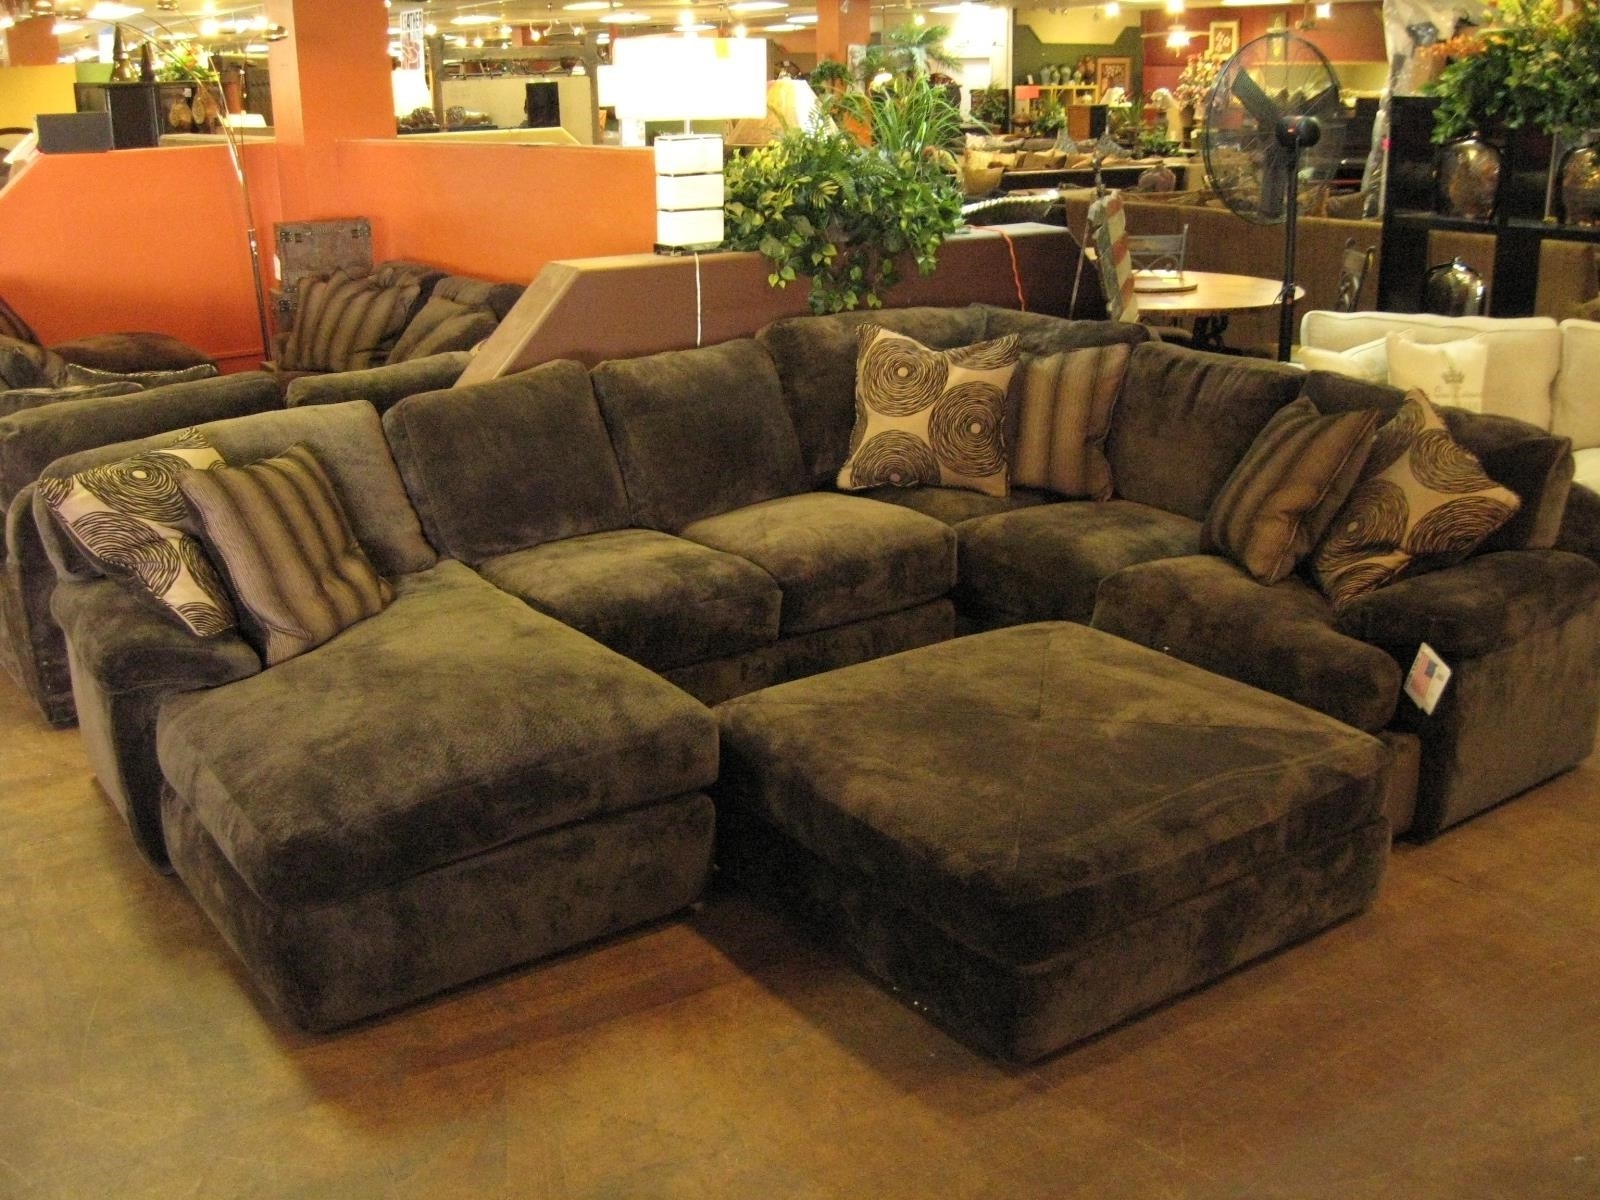 Couches With Large Ottoman In Most Popular Large Sectional Sofa With Ottoman – Visionexchange (View 3 of 15)